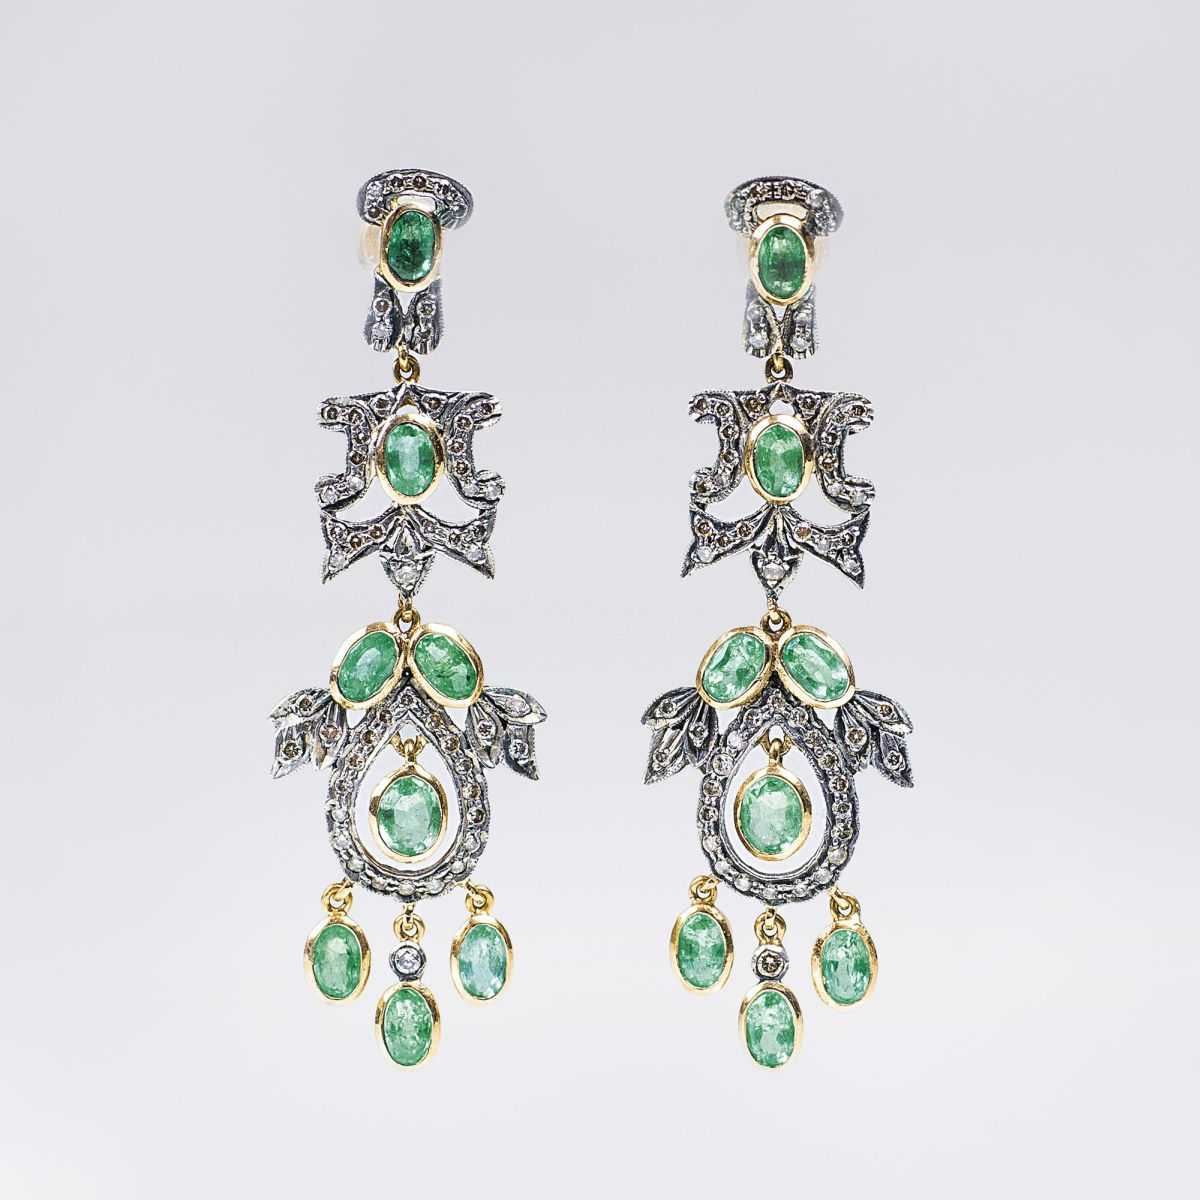 A Pair of Emerald Diamond Earpendants in Belle-Epoque Style